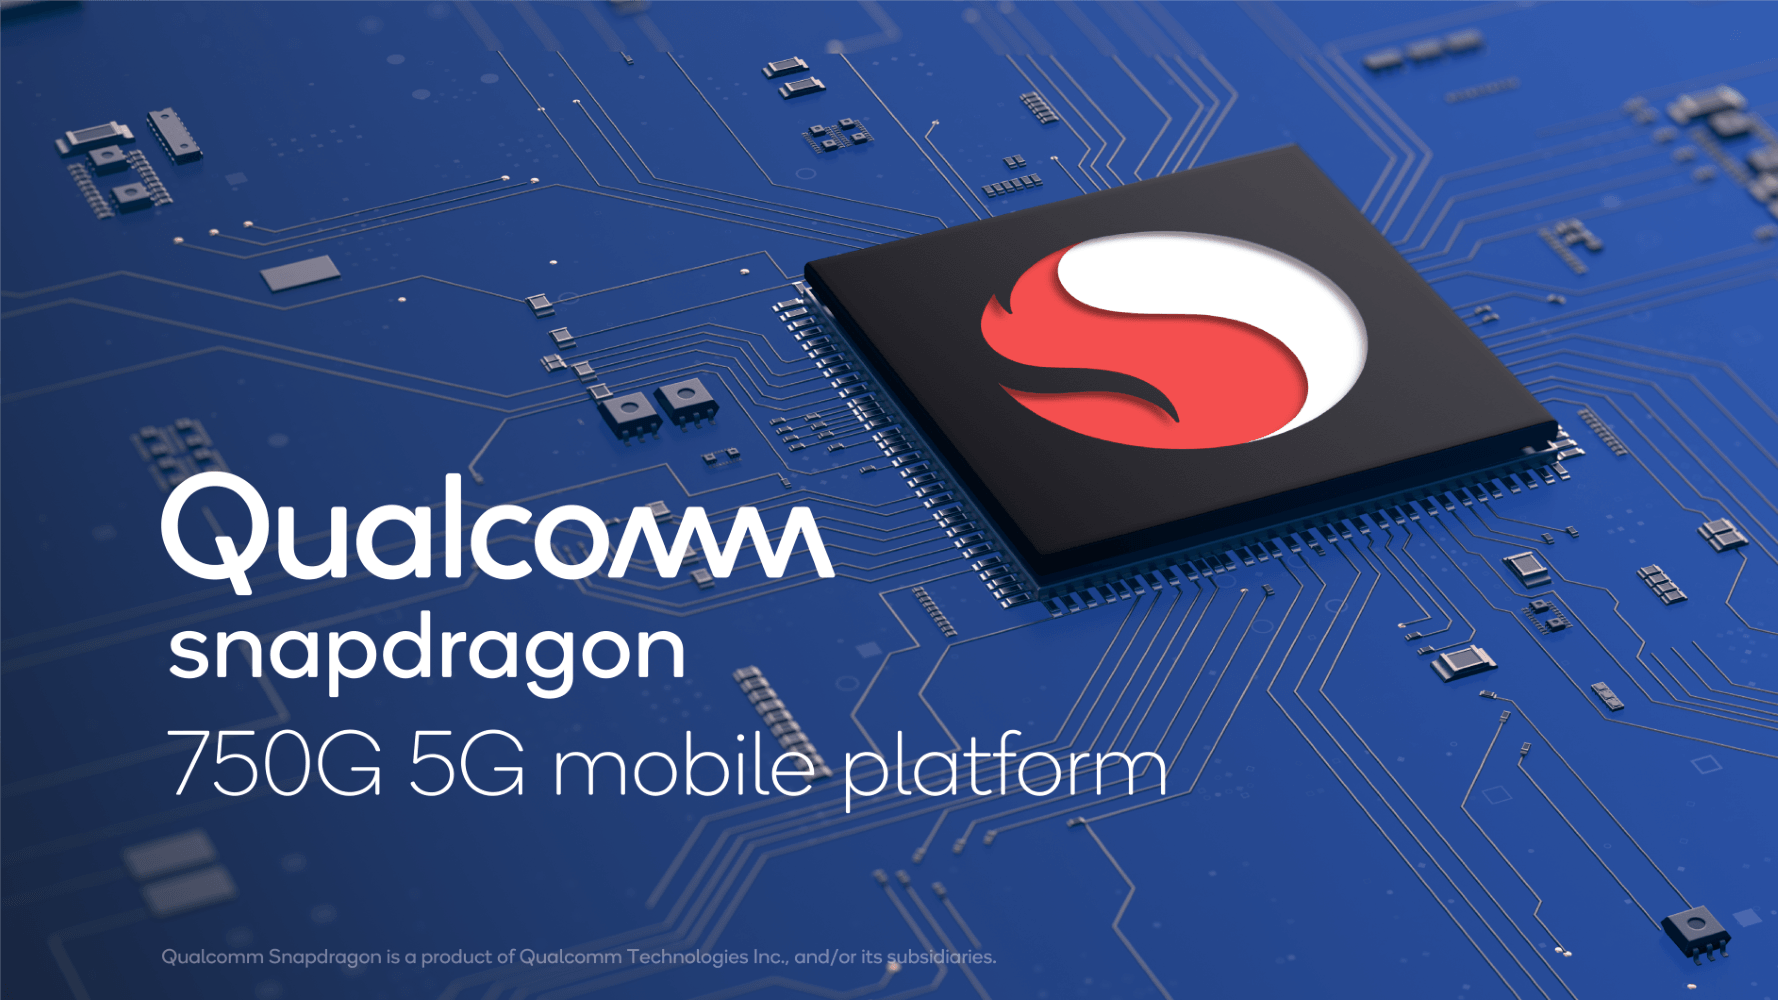 Qualcomm launches Snapdragon 750G 5G mobile platform